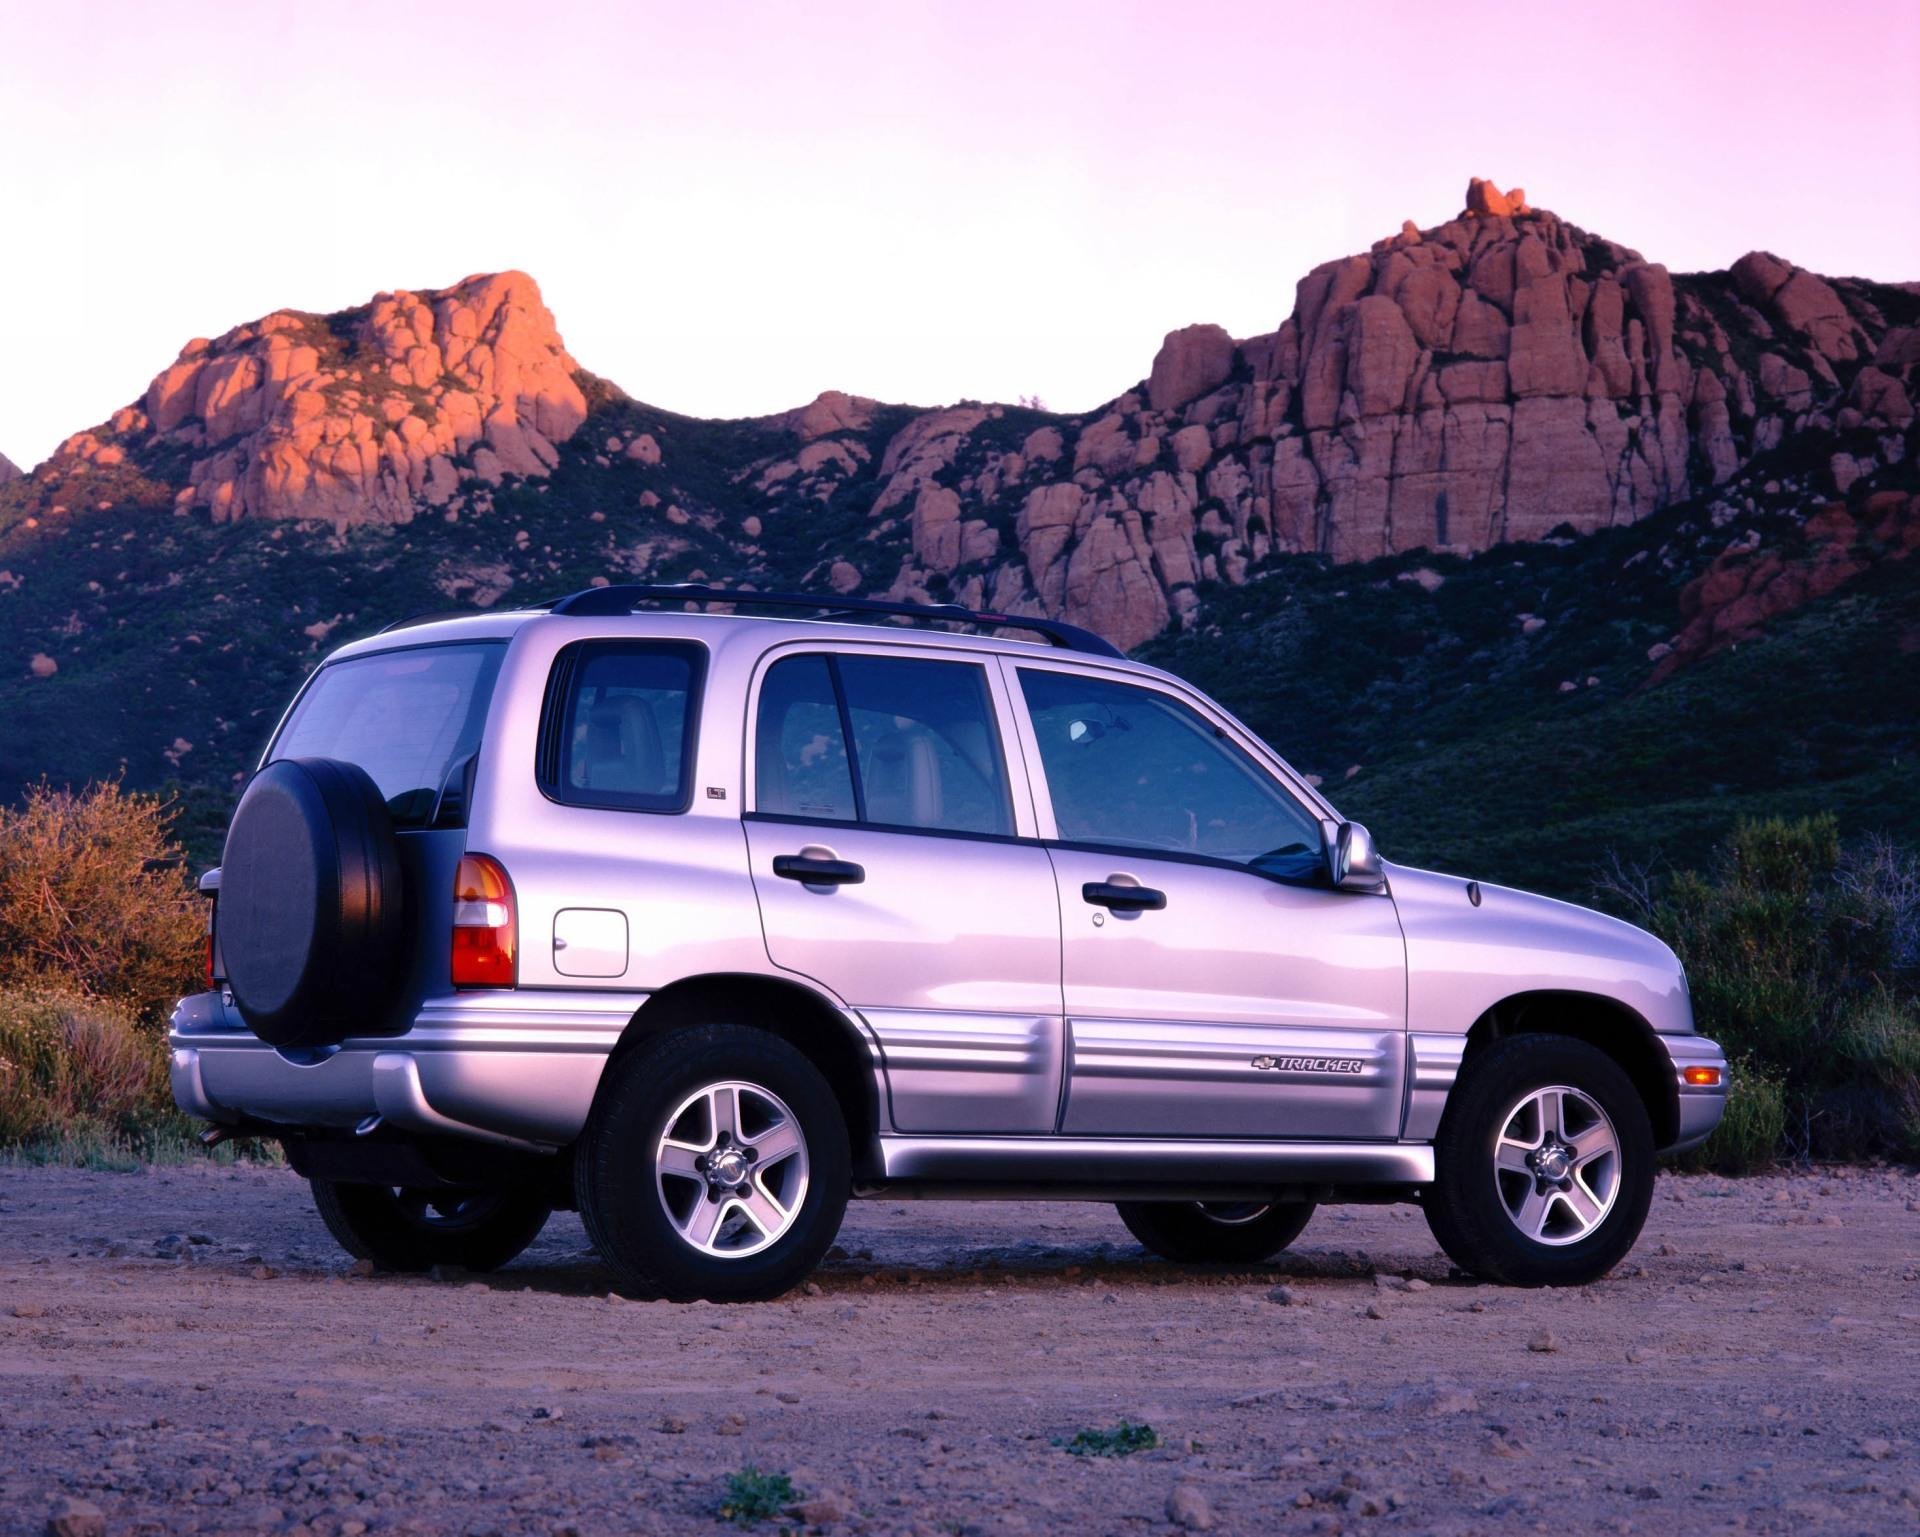 2004 Chevrolet Tracker History, Pictures, Value, Auction Sales, Research  and News